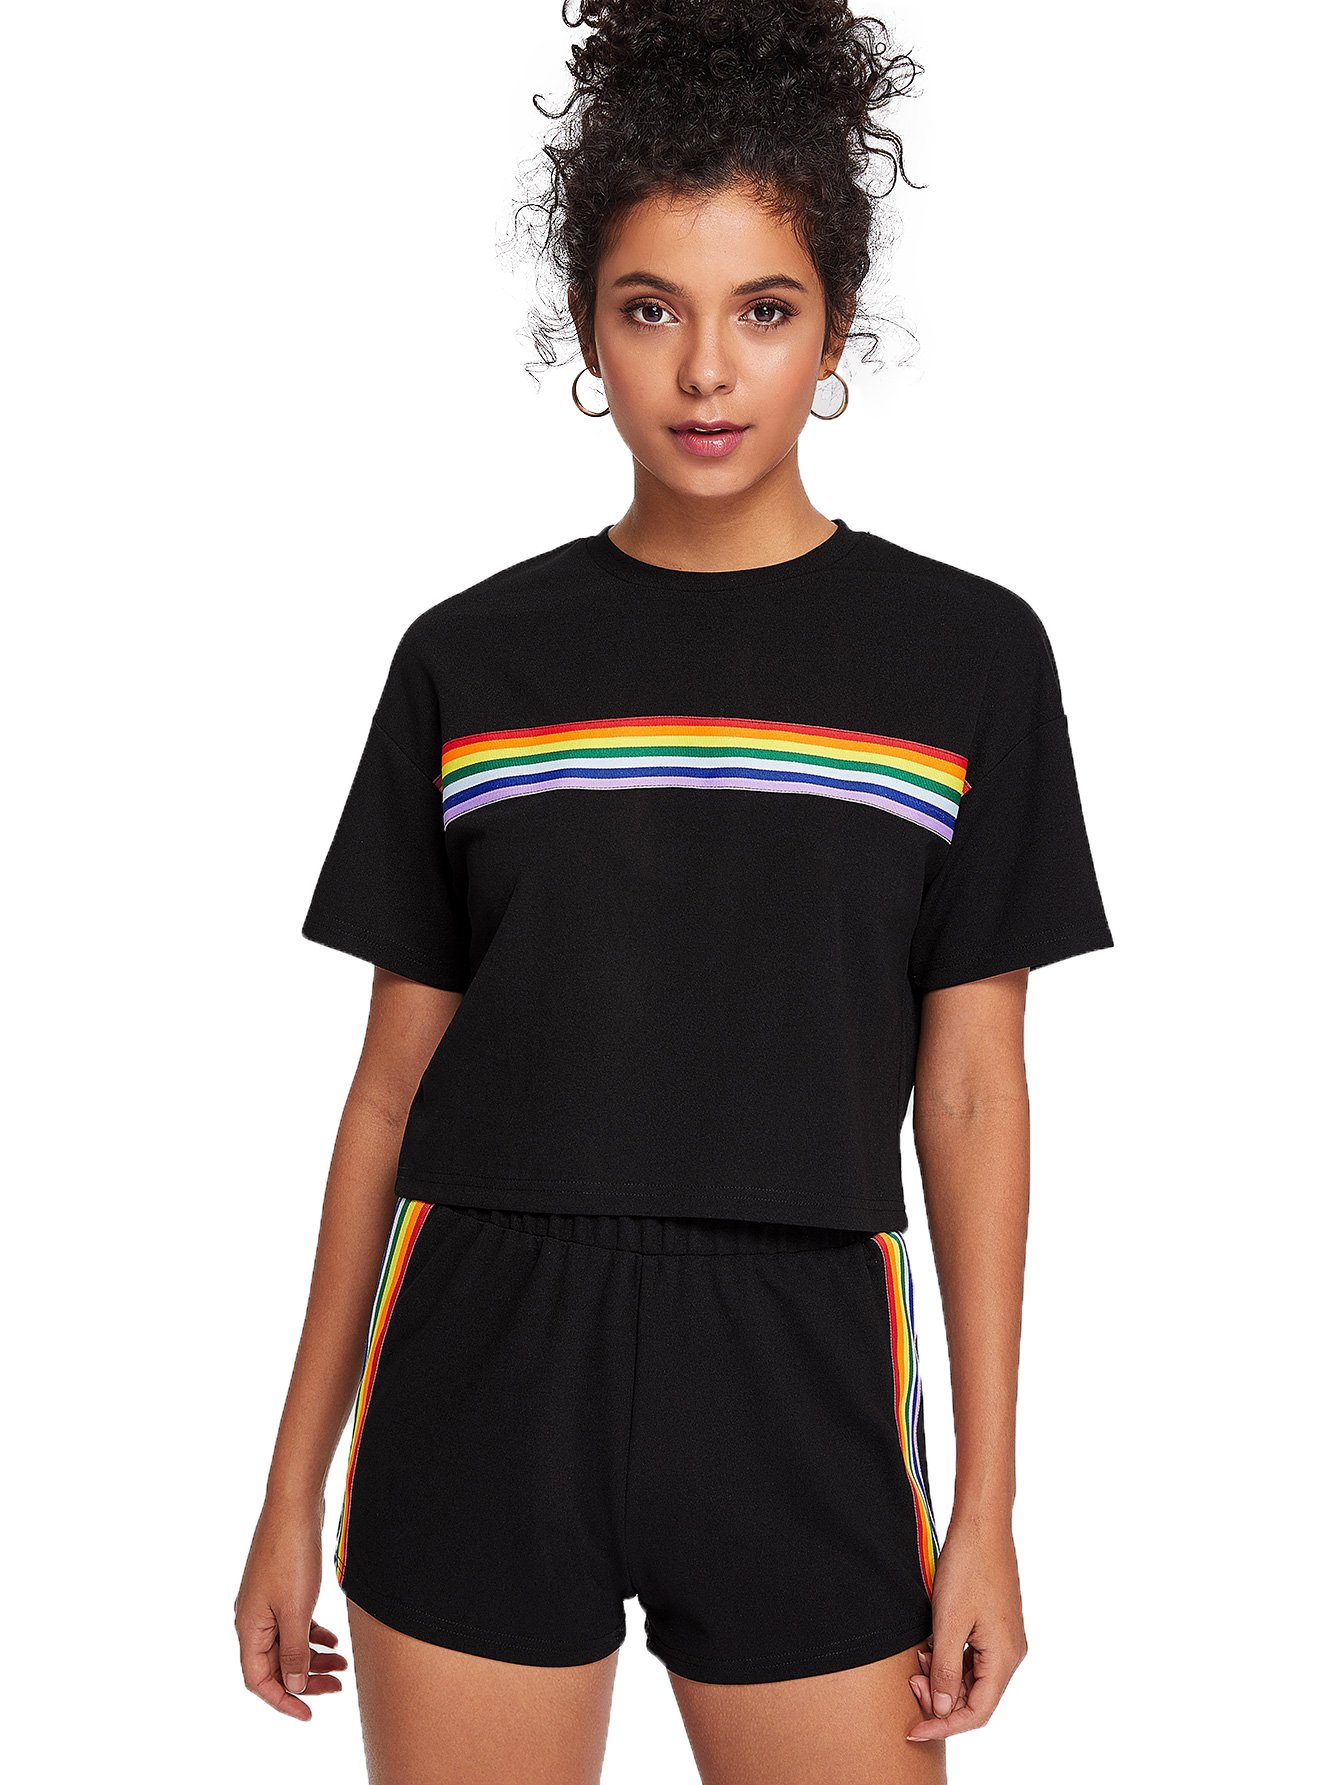 Romwe Women's 2 Piece Set Rainbow Print Casual Crop Cami Top with Shorts Black L